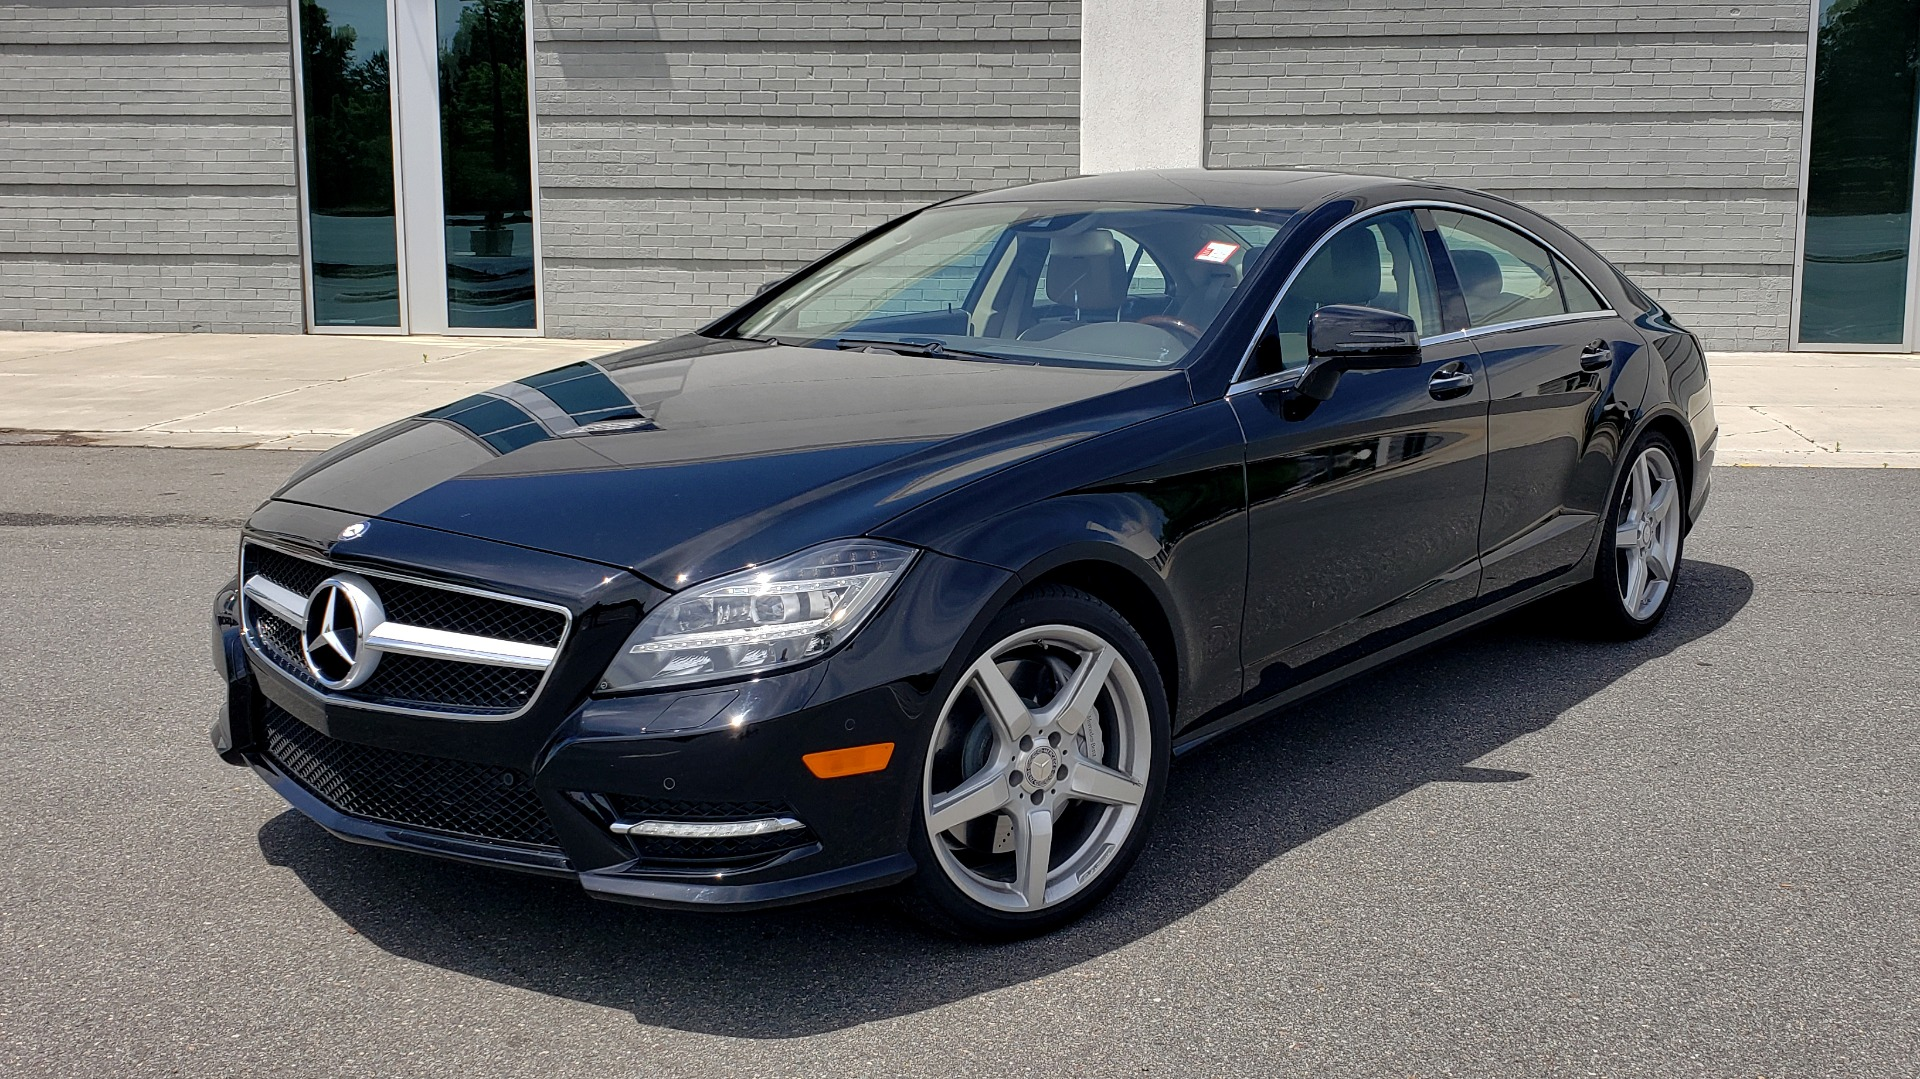 Used 2014 Mercedes-Benz CLS-CLASS CLS 550 PREMIUM / AMG SPORT WHLS / SUNROOF / LANE TRACK / PARKTRONIC for sale Sold at Formula Imports in Charlotte NC 28227 1